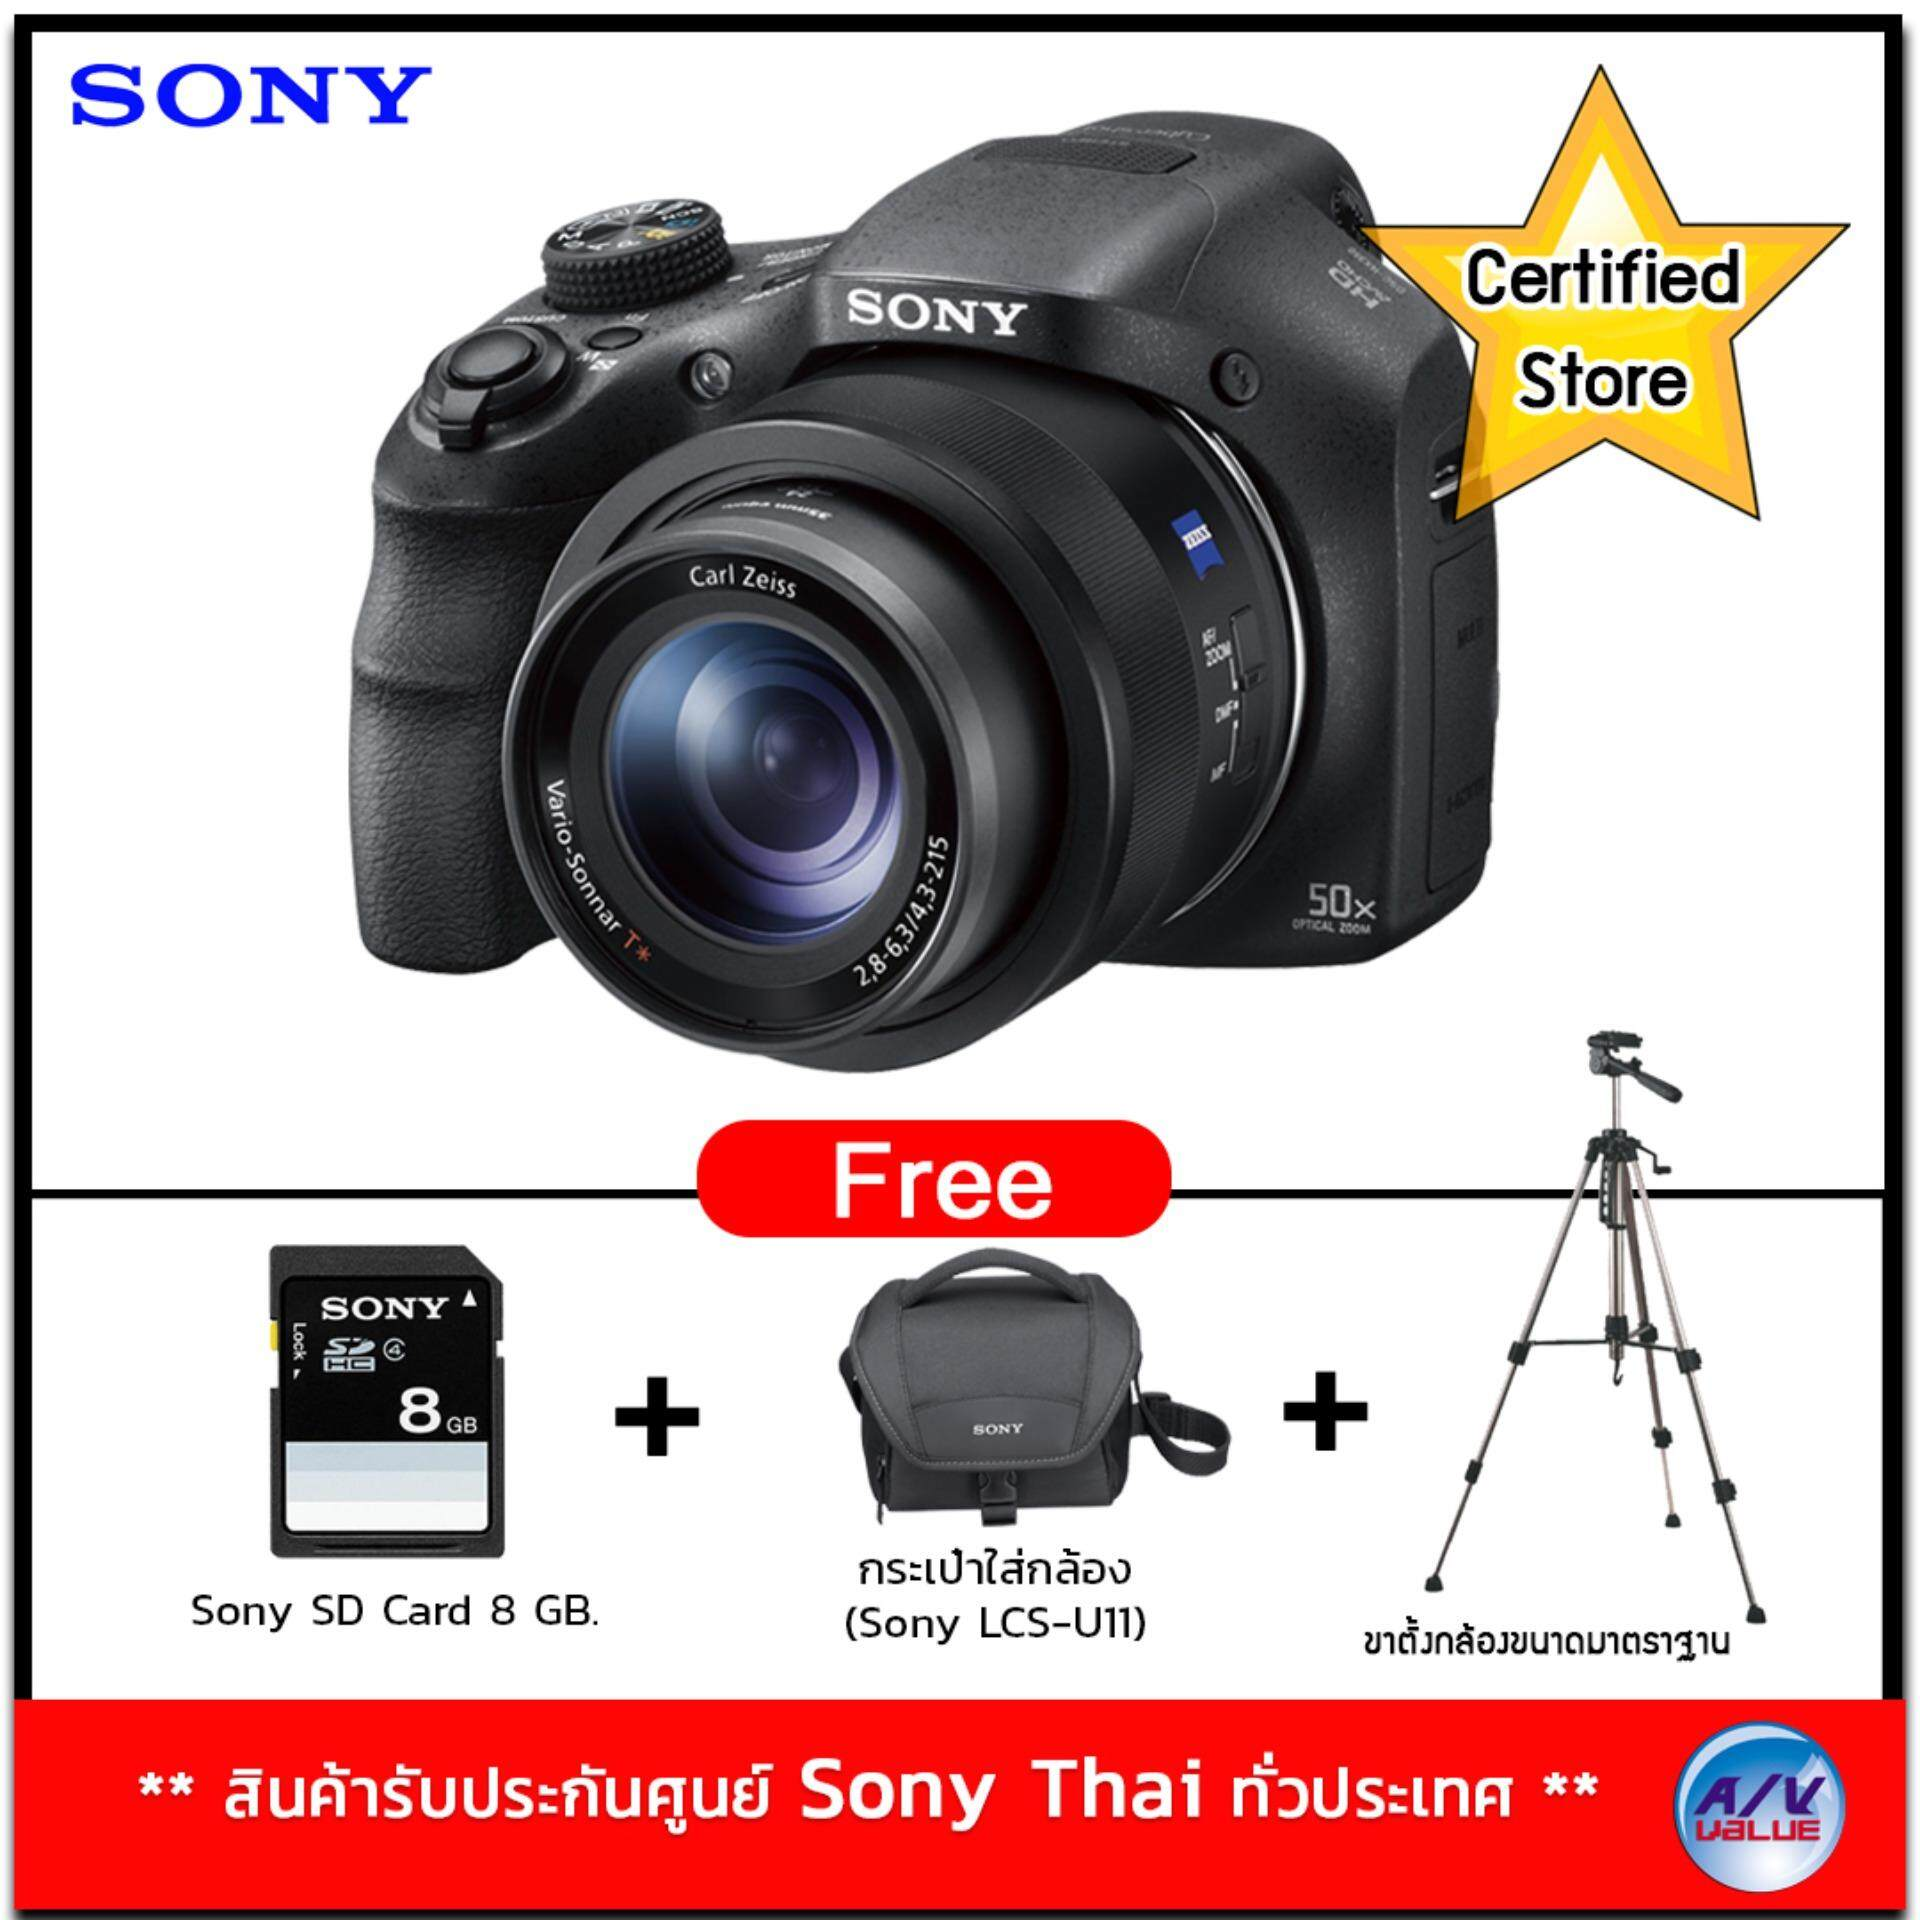 .Sony Cyber-shot (New Hi Zoom 50x) รุ่น DSC-HX350 (PLUS+ Sony SD Card 8GB + Sony Bag รุ่น LCS-U21 + ขาตั้งกล้อง